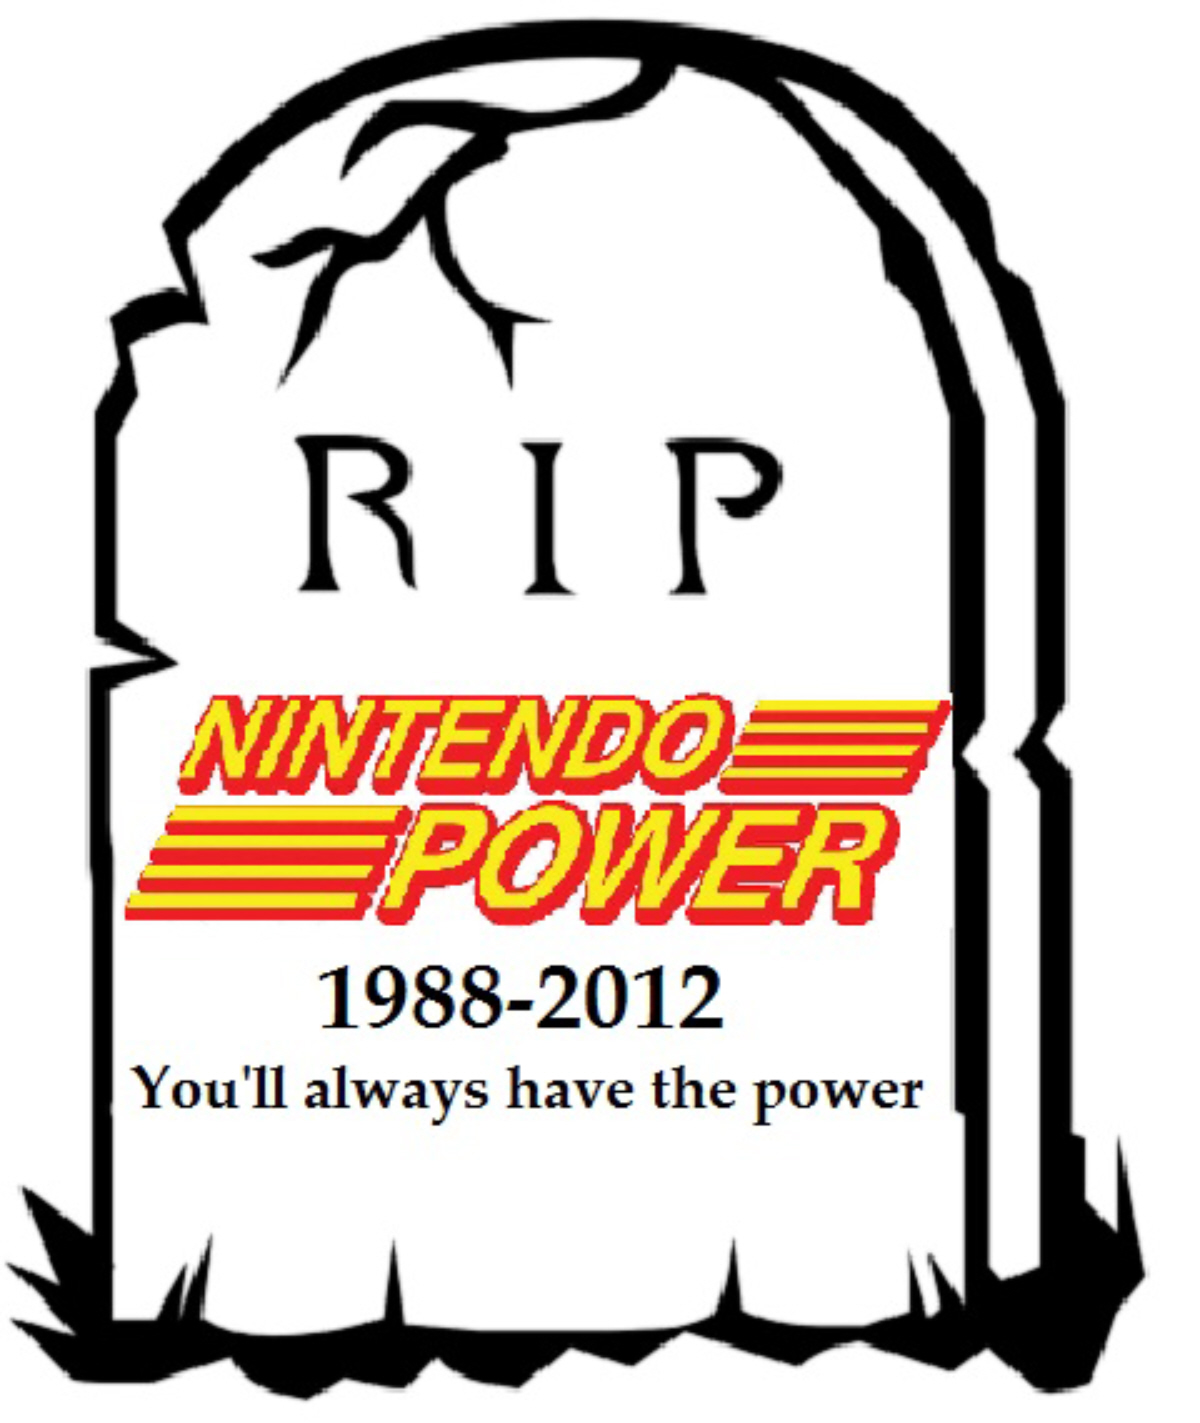 [Image: rip-nintendo-power-rest-in-peace-grave-1988-2012.jpg]